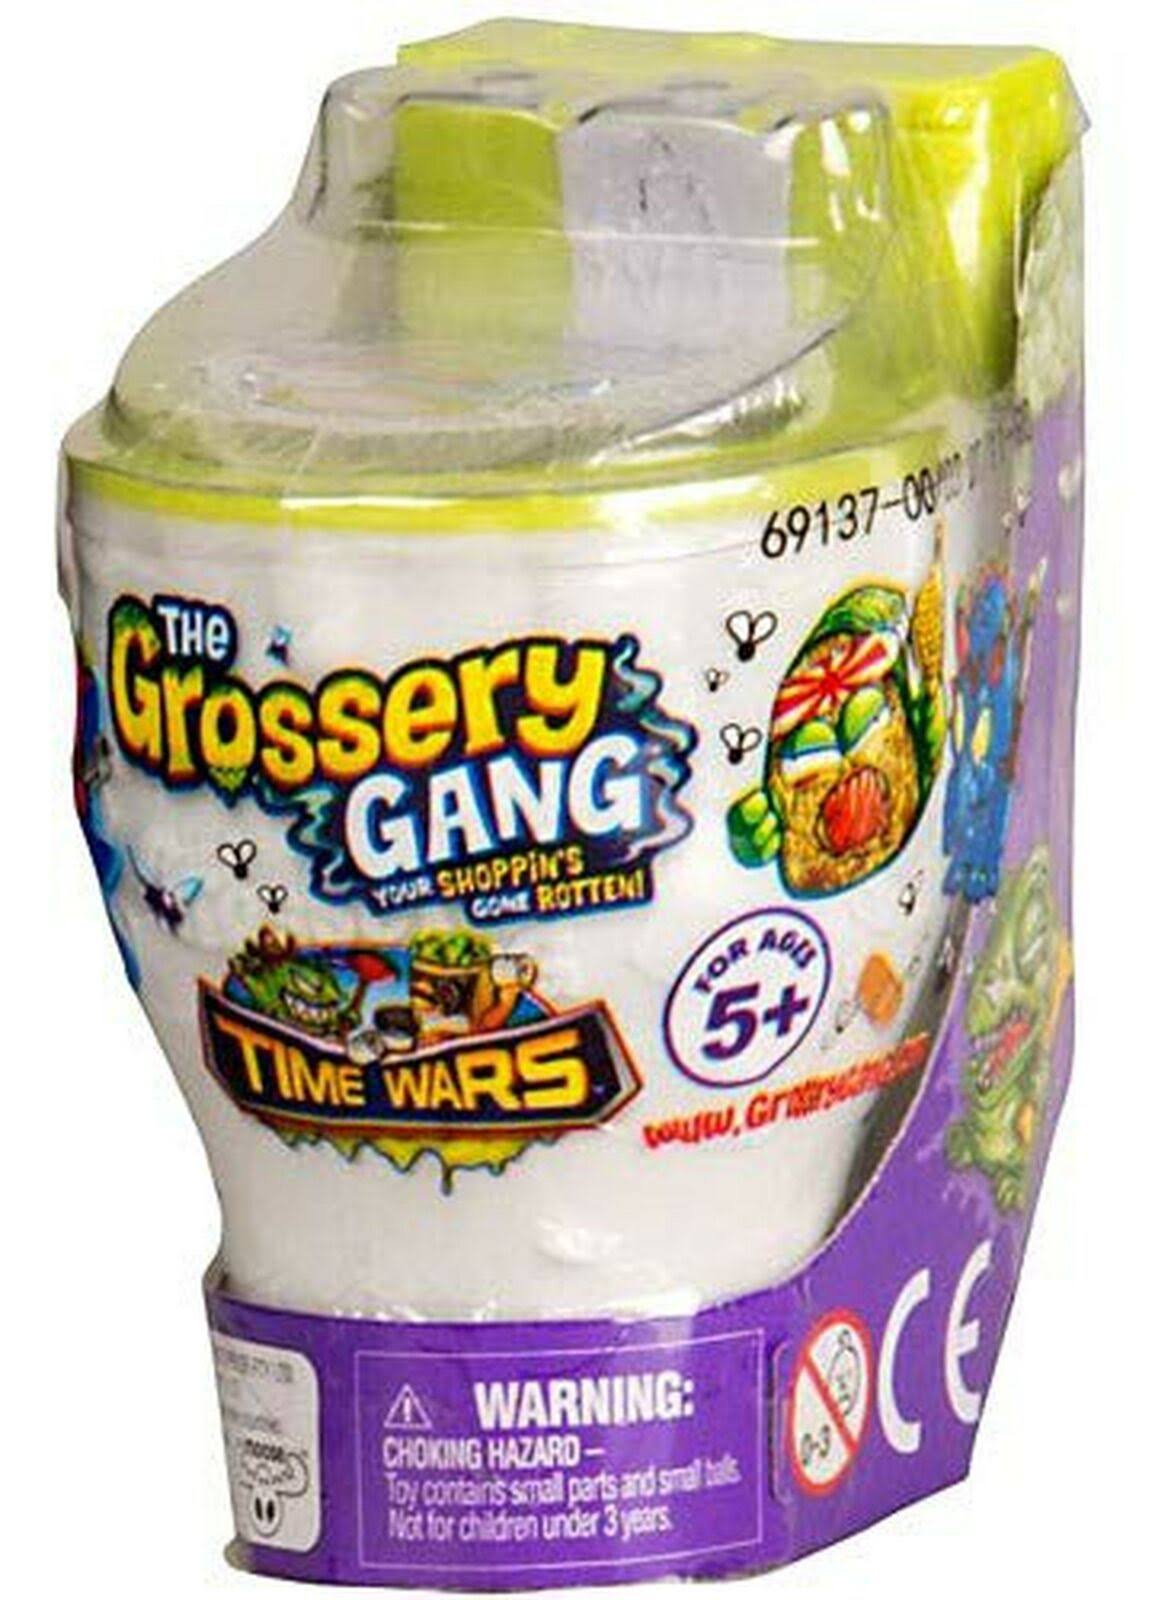 The Grossery Gang Series 5 Time Wars Mystery Pack